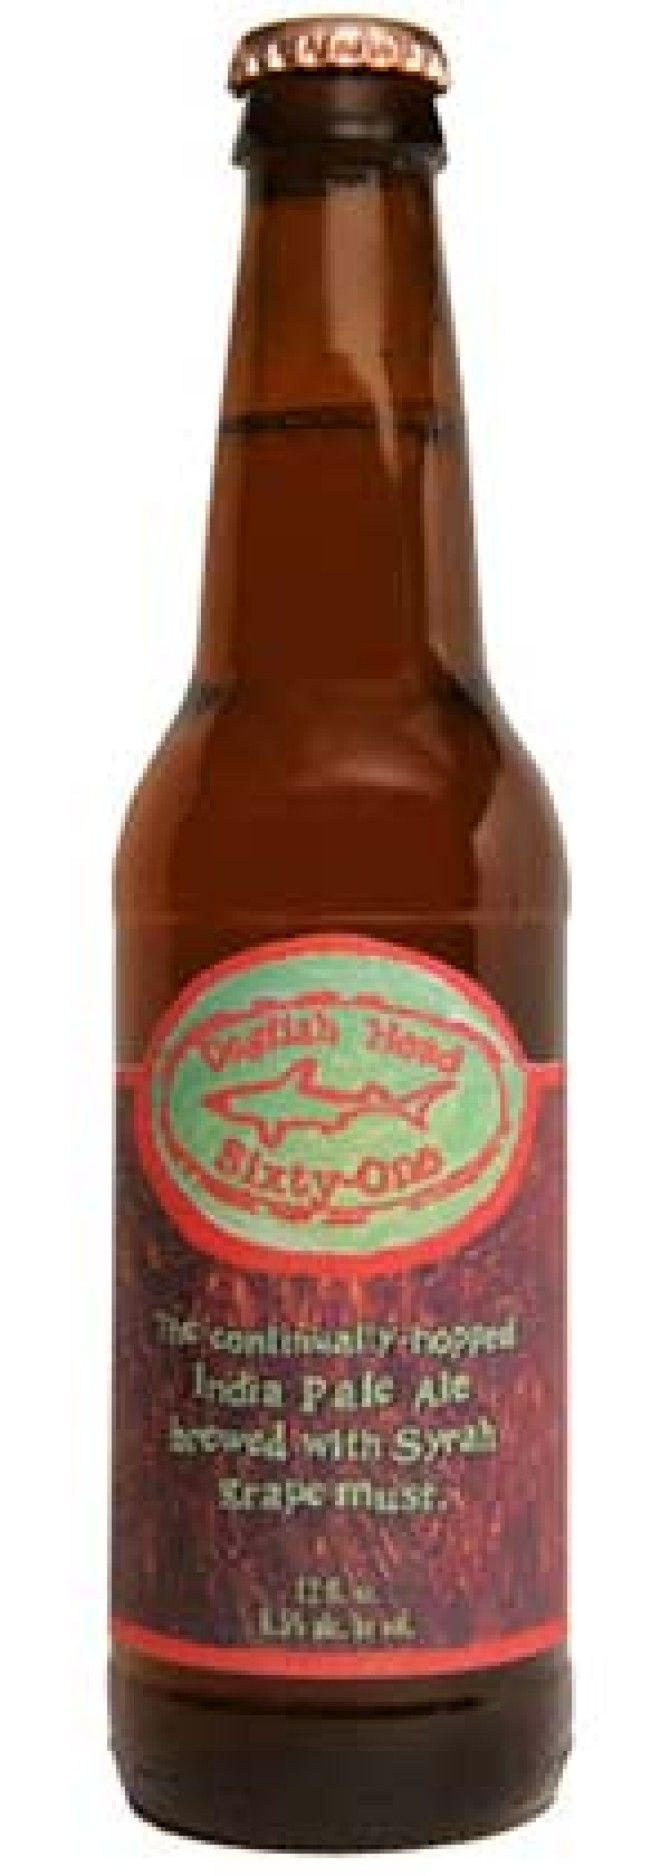 dogfish-sixty-one